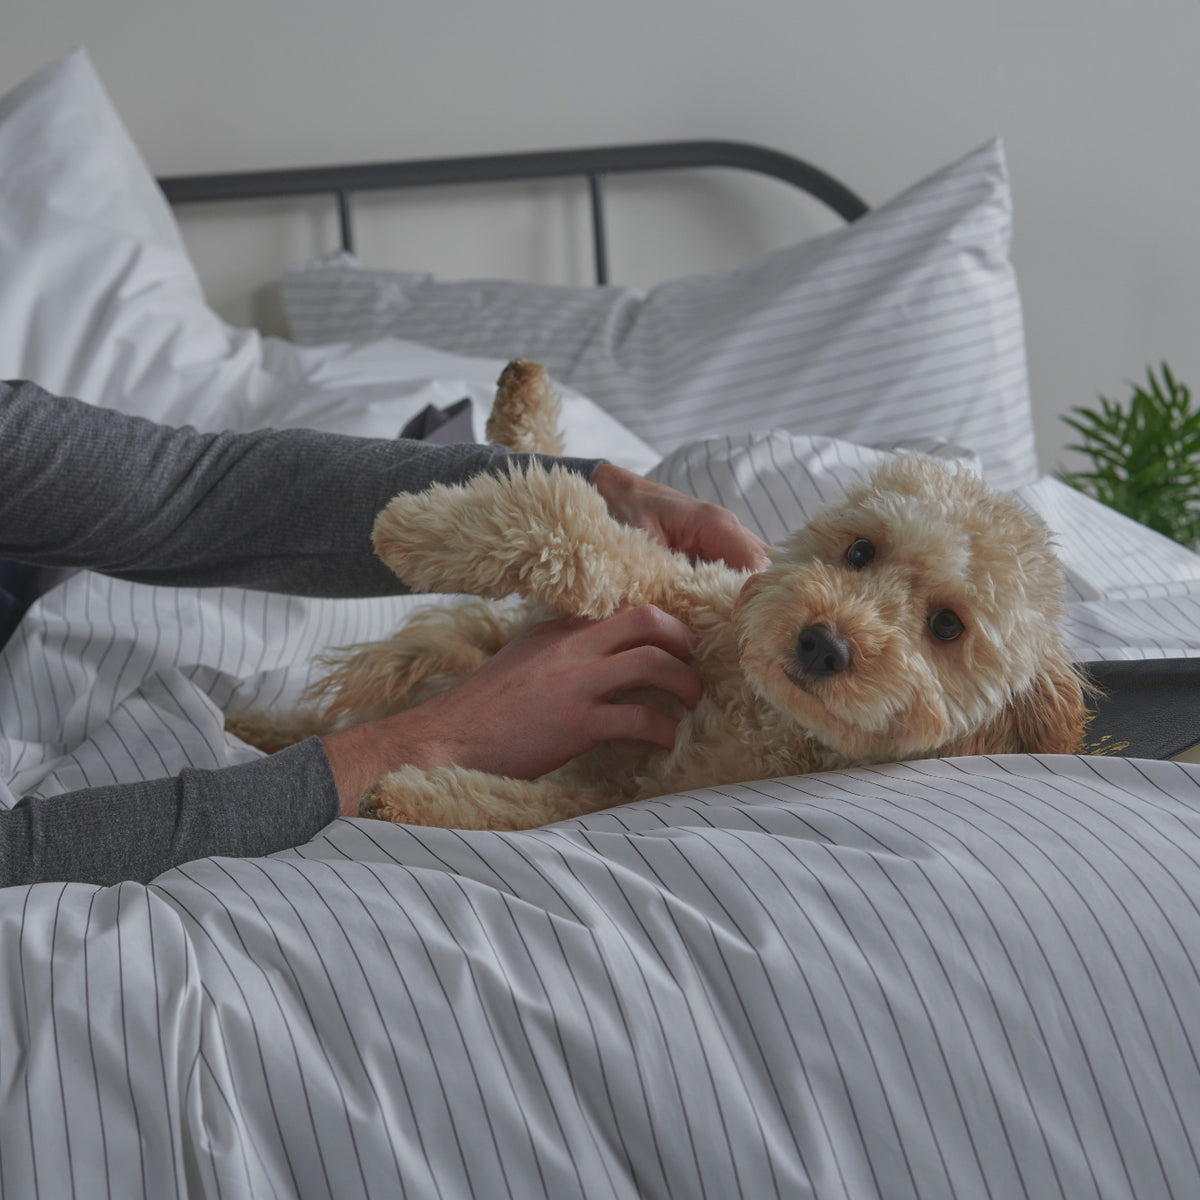 Man playing with dog on bed